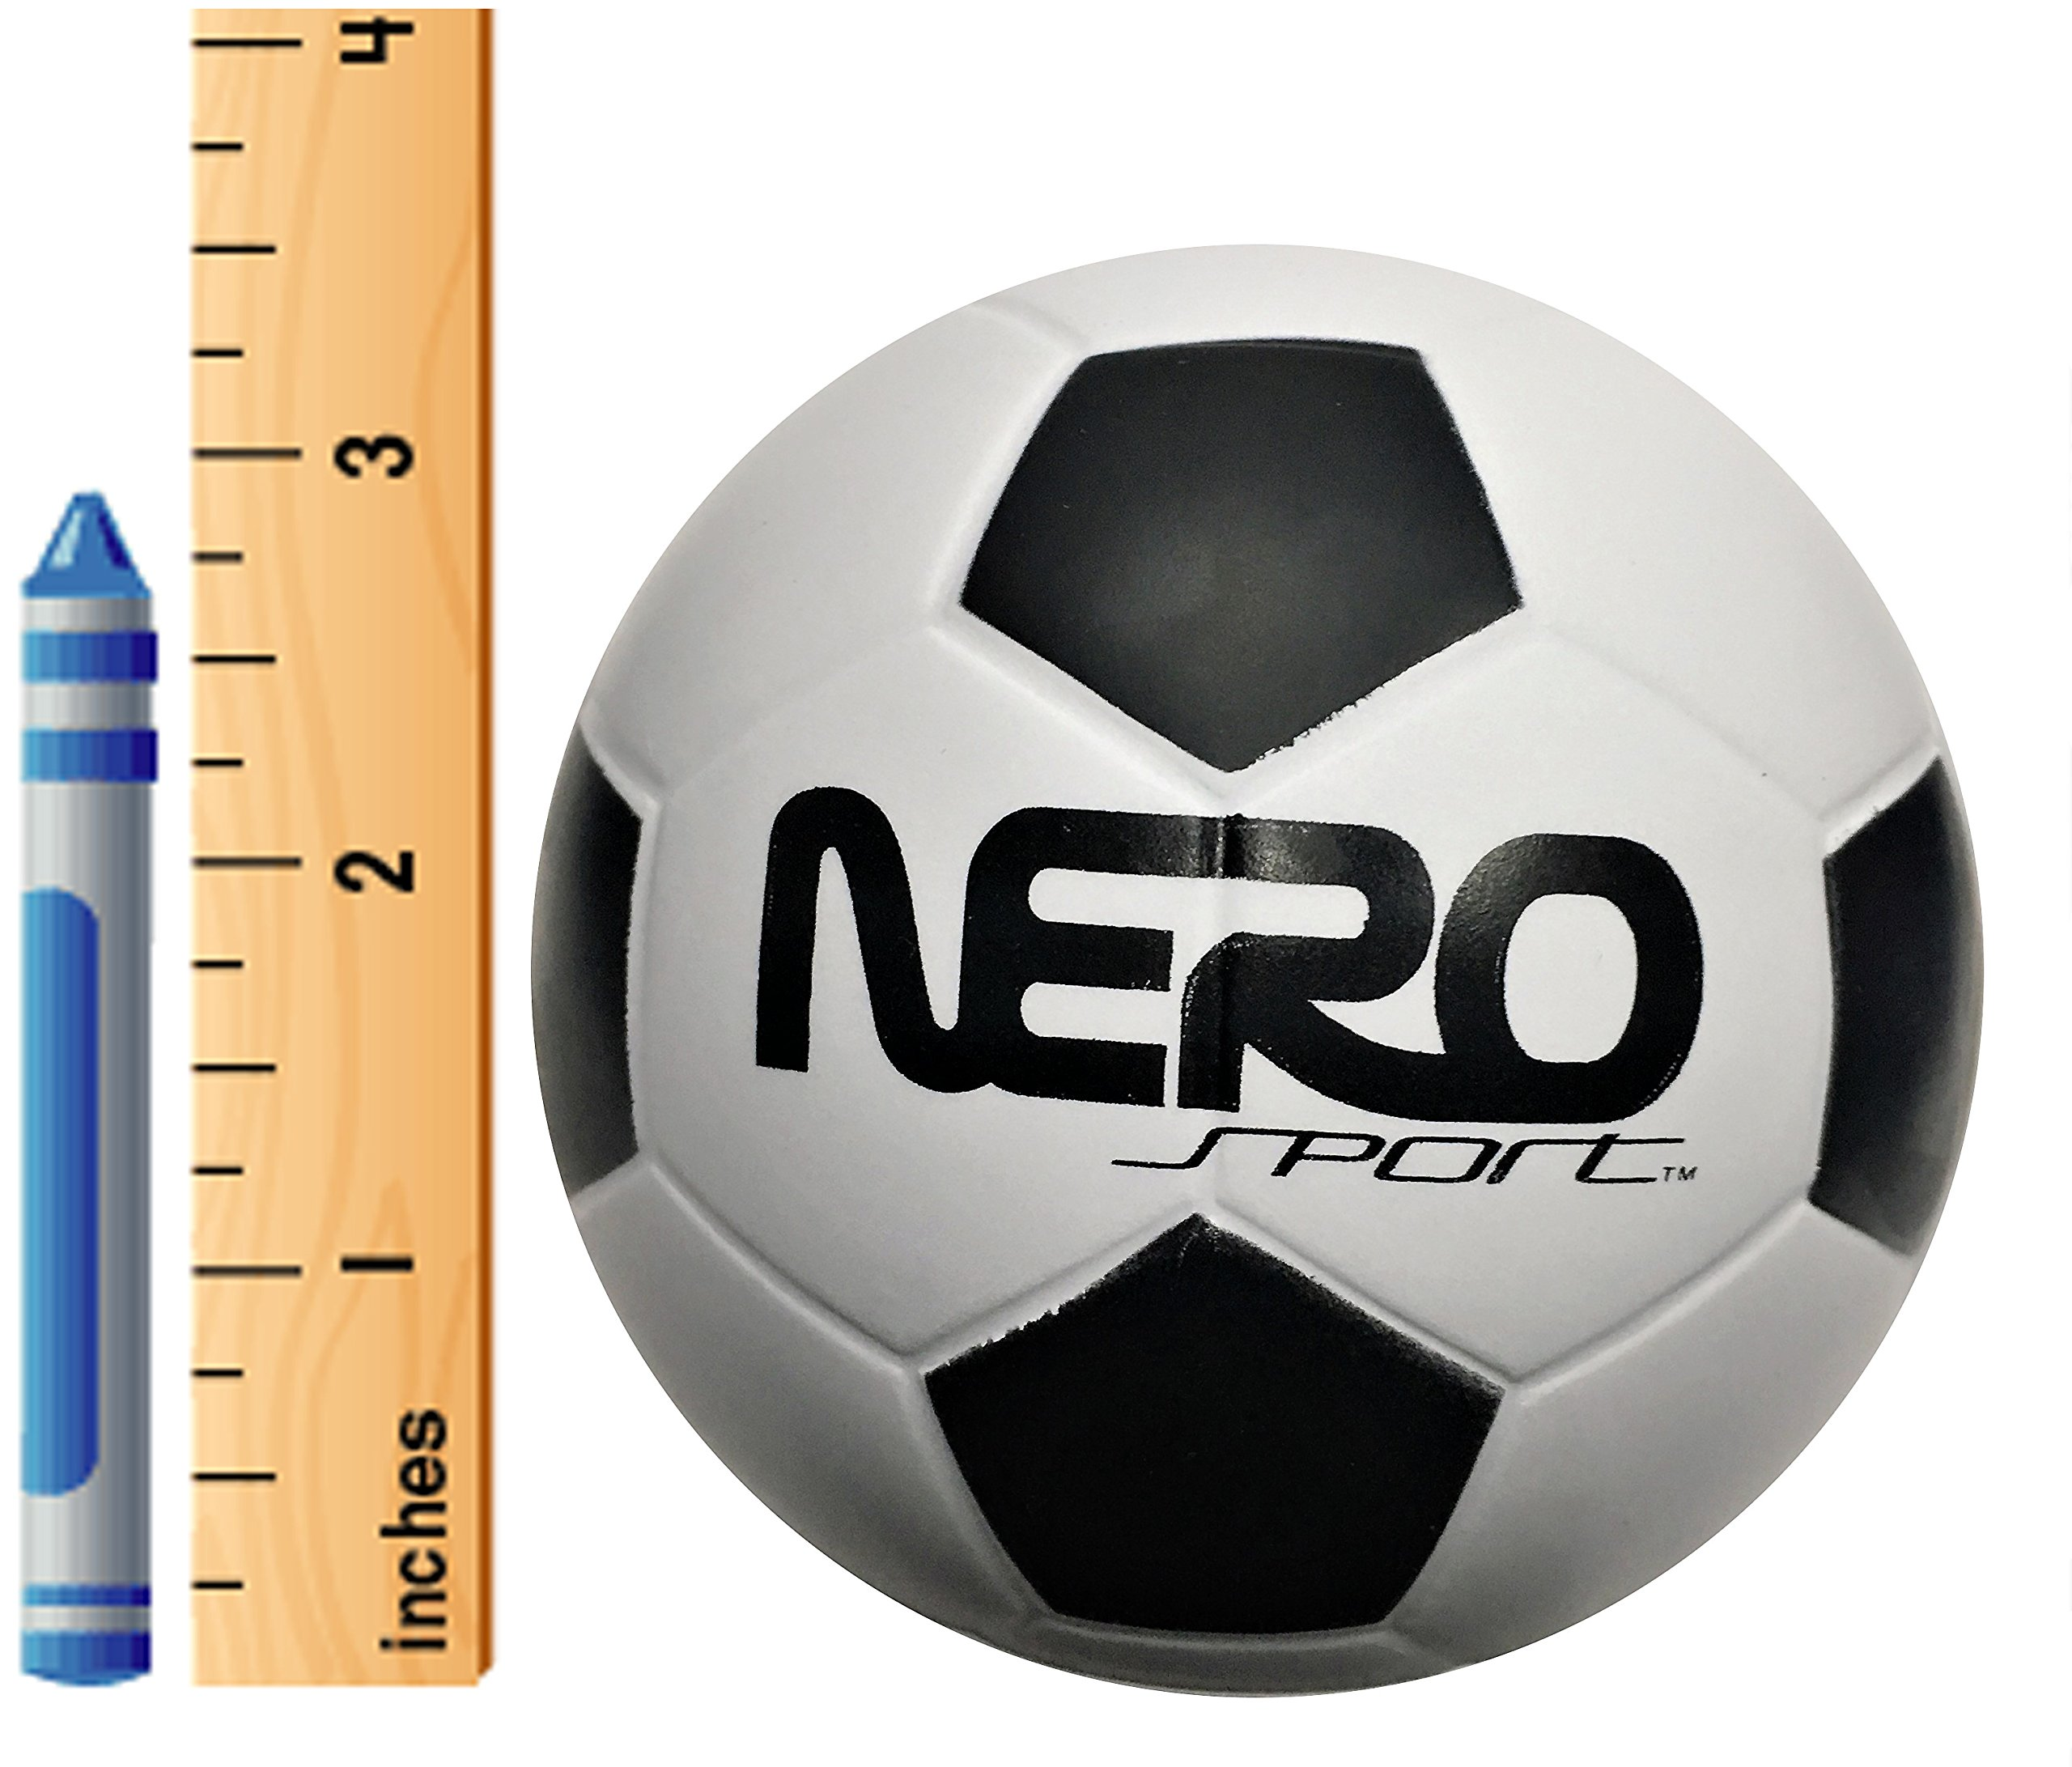 Nero NS200 High Bounce Rubber Toy Ball 3.5'' Soccer Futbol Training Style Great For Streets Park Back Yard Agility Ball Bulk Price Gifts (white soccer)